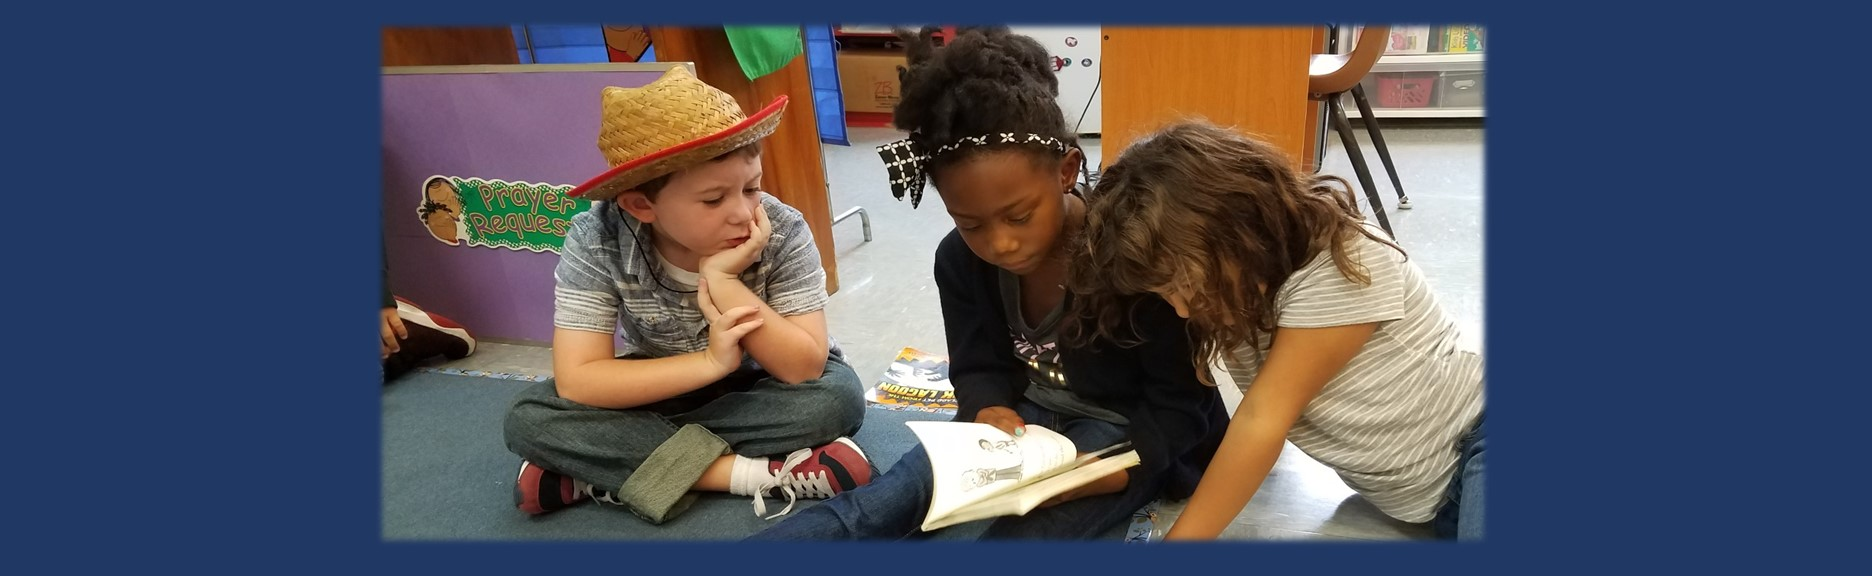 One boy and two girls reading together during Before School Care at St Paul Lutheran School Catonsville